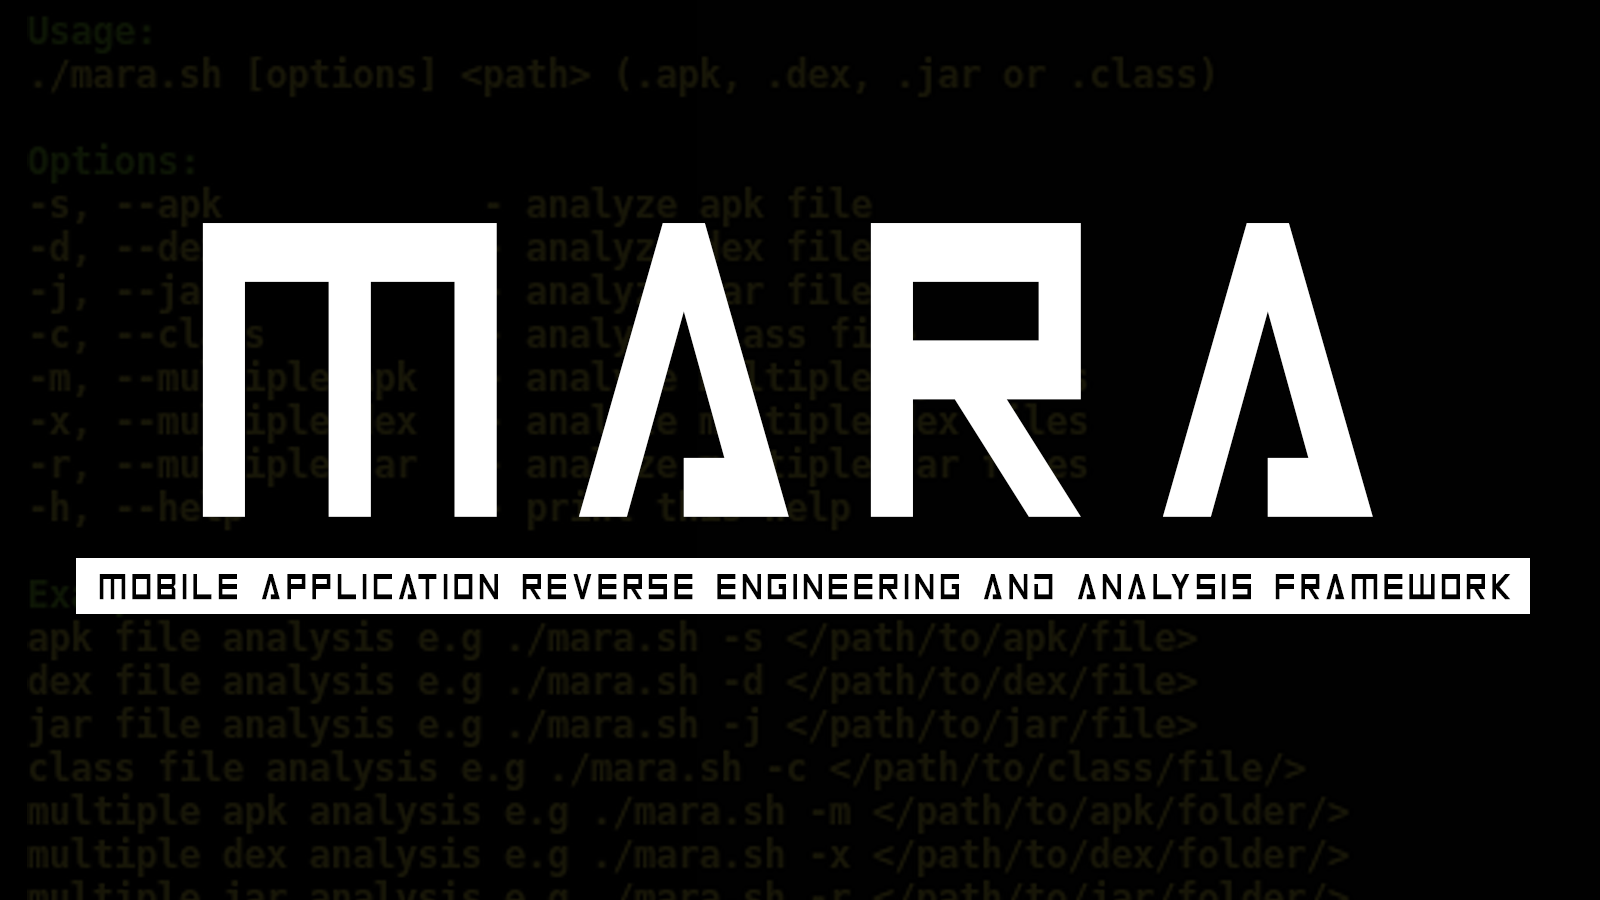 MARA - A Mobile Application Reverse Engineering and Analysis Framework